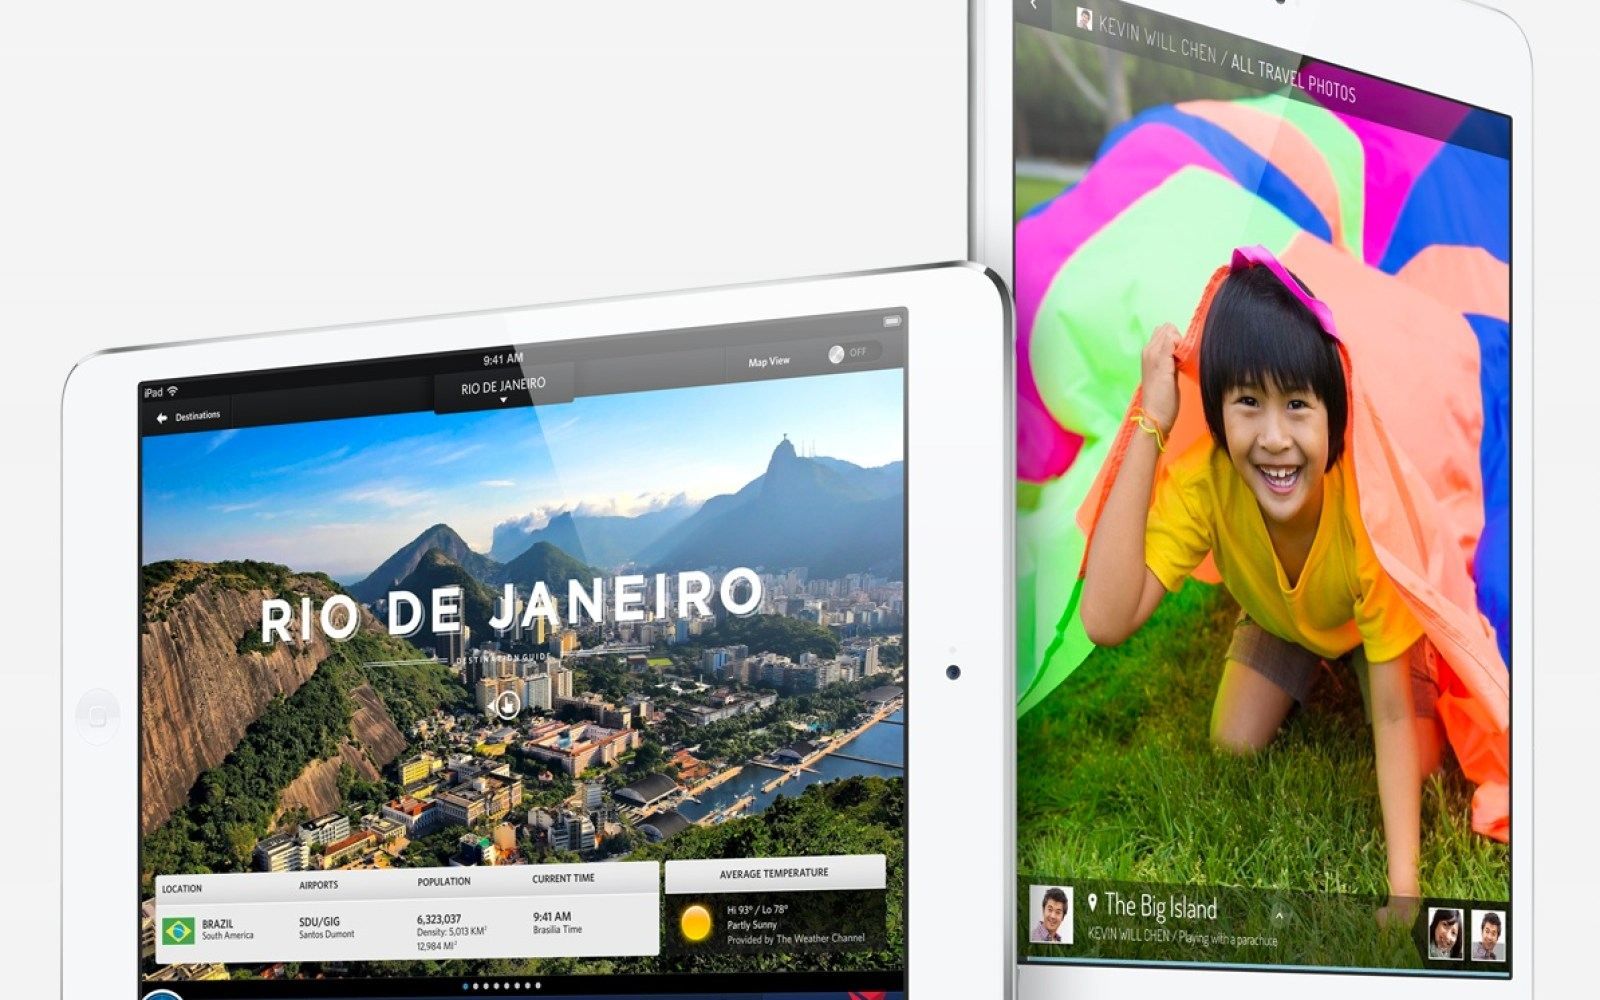 Apple has A6-based iPad mini without Retina display in the works